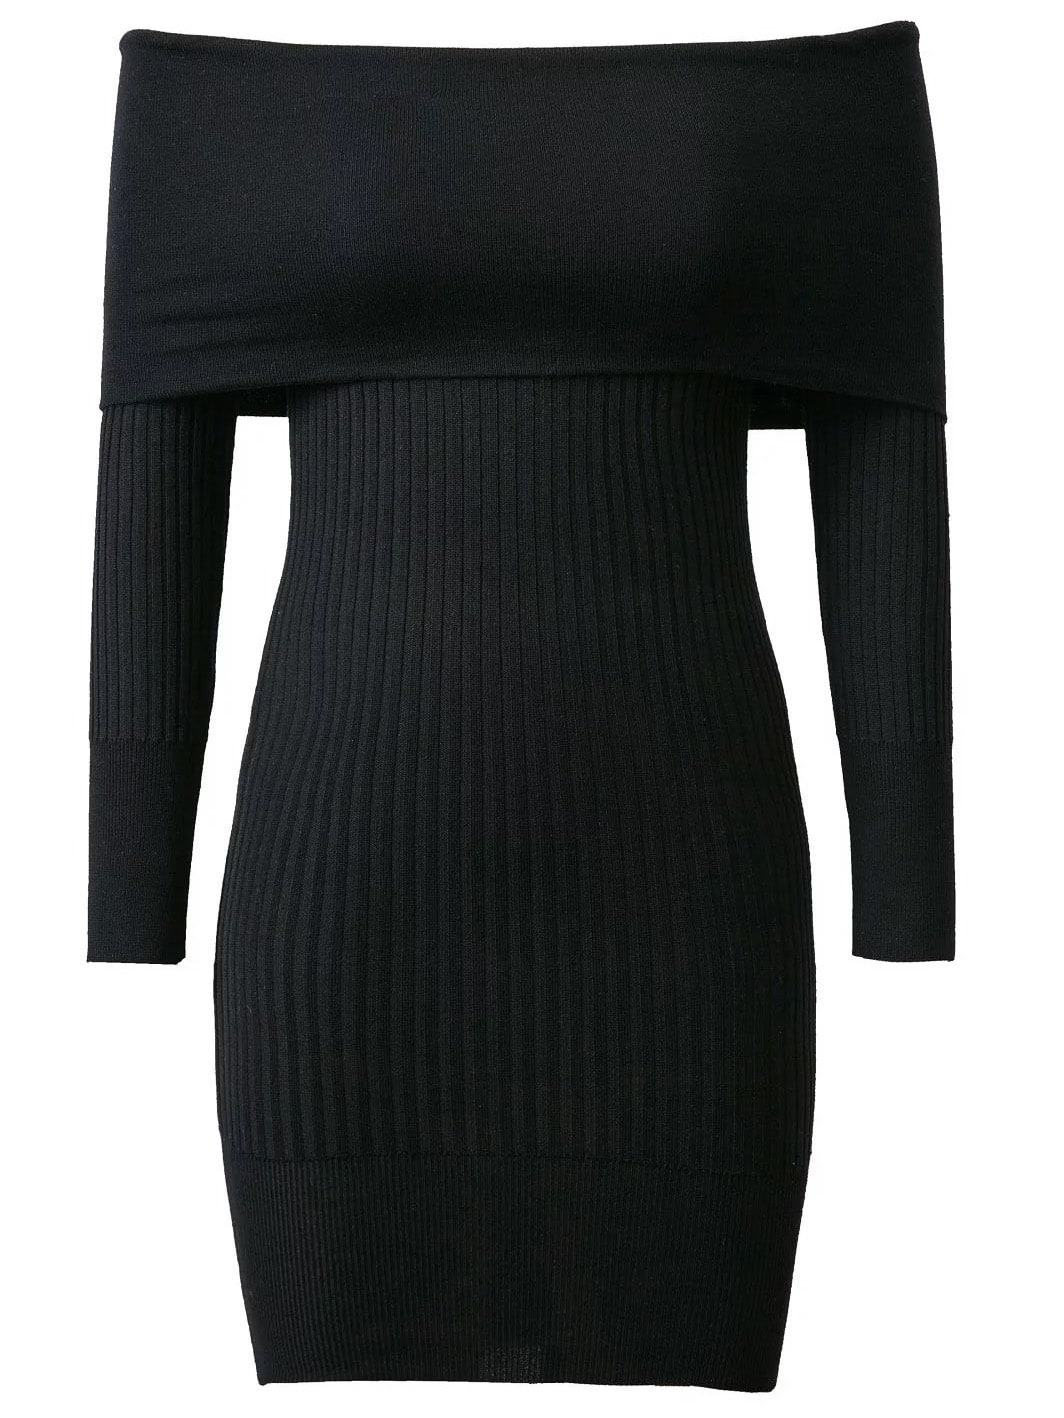 Black Ribbed Off The Shoulder Knit Bodycon Dress